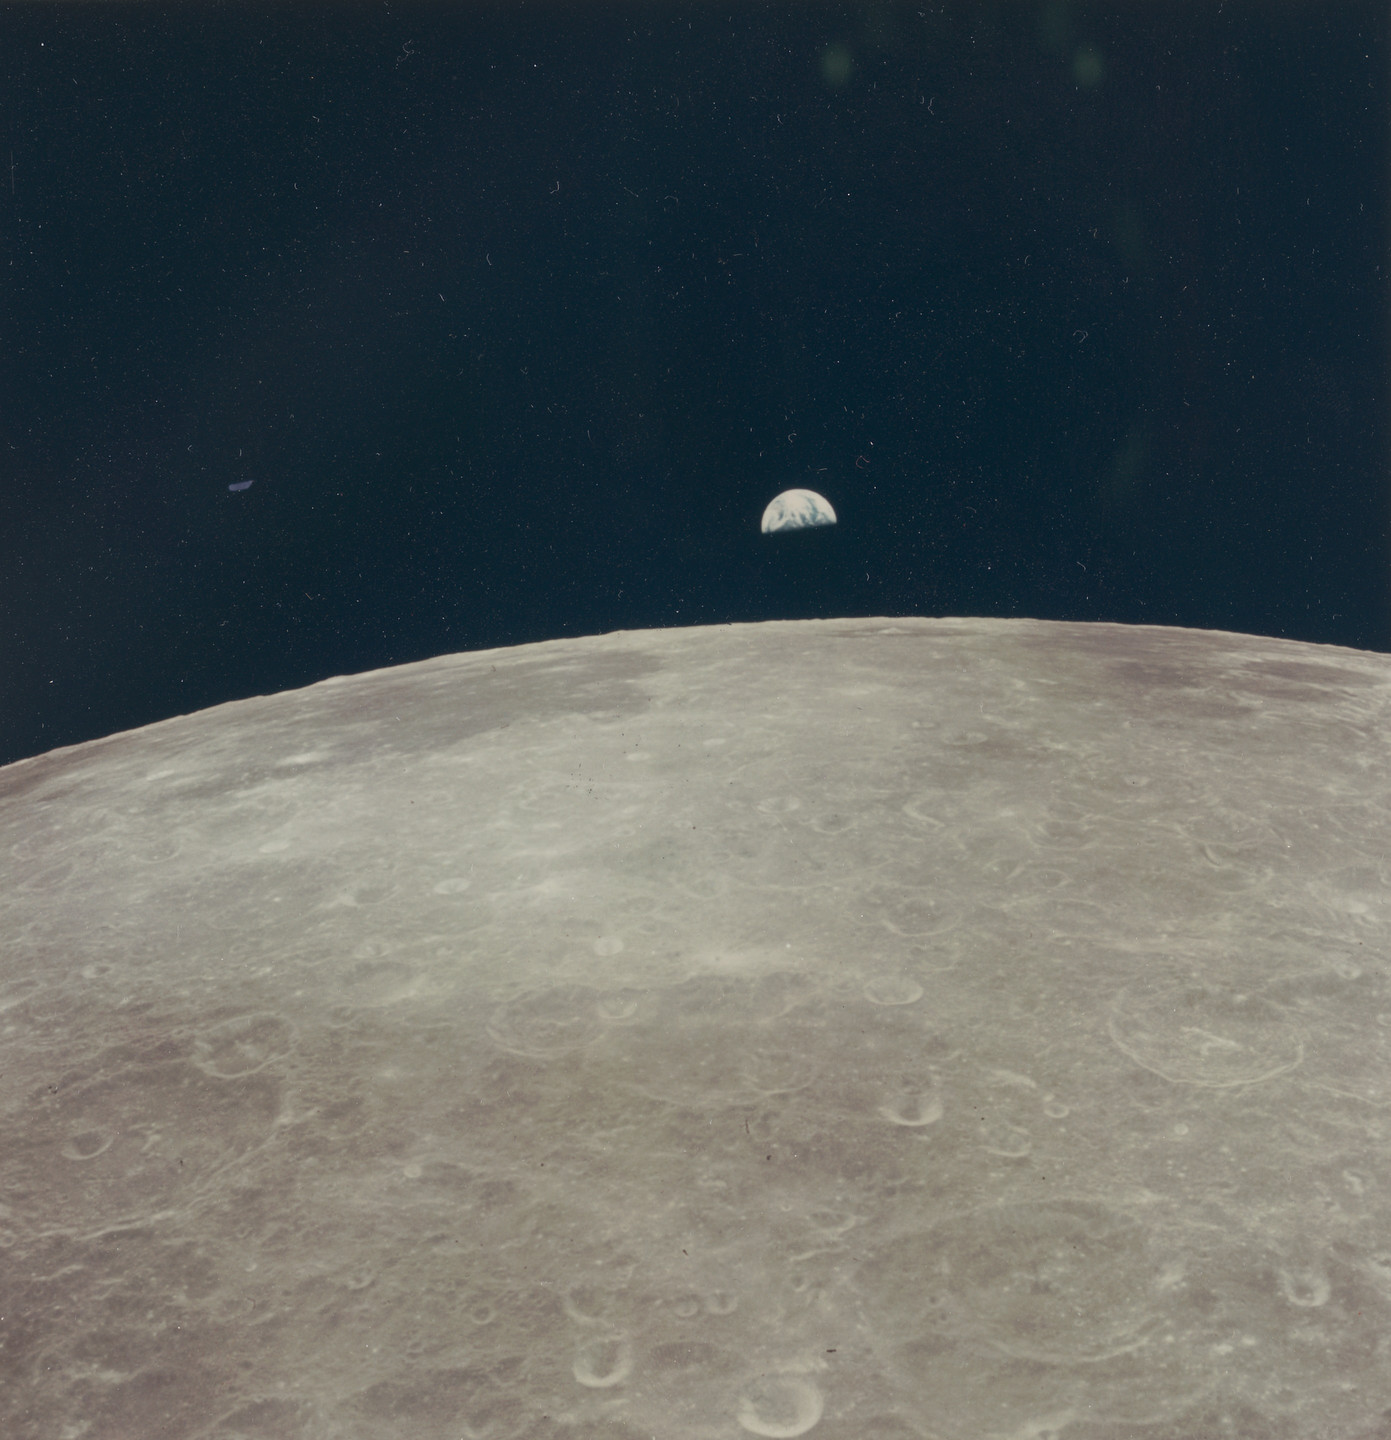 NASA. Untitled photograph from the Apollo 11 mission. July 1969